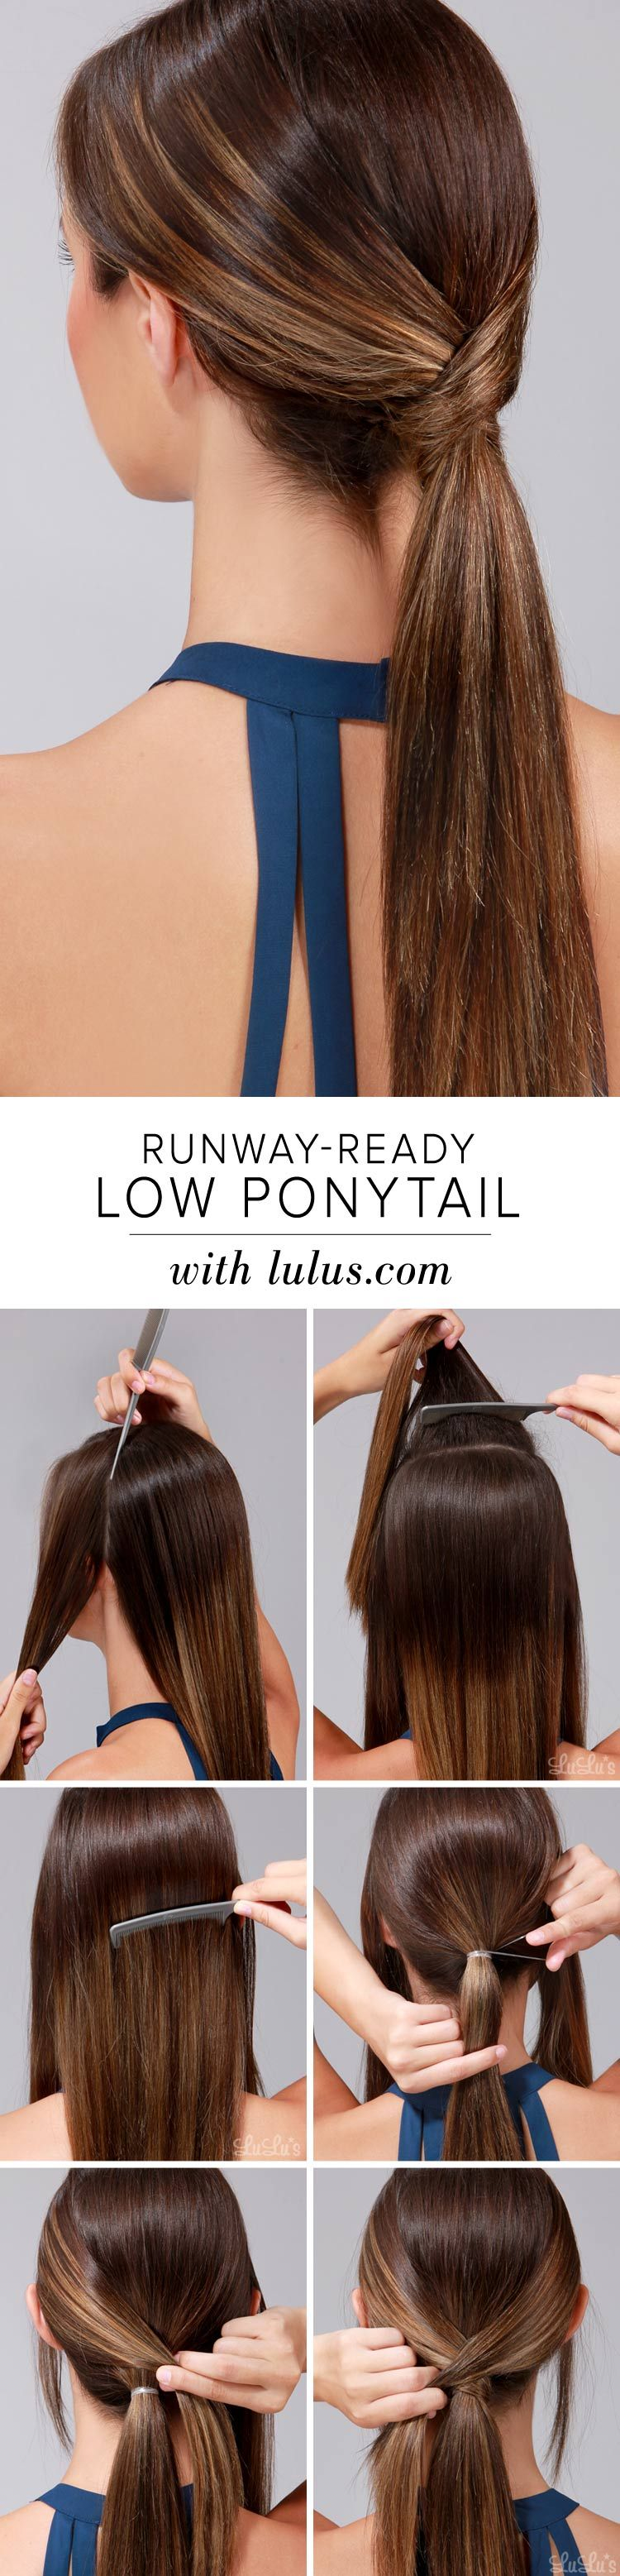 Lulus howto runwayready low ponytail ponytail tutorial